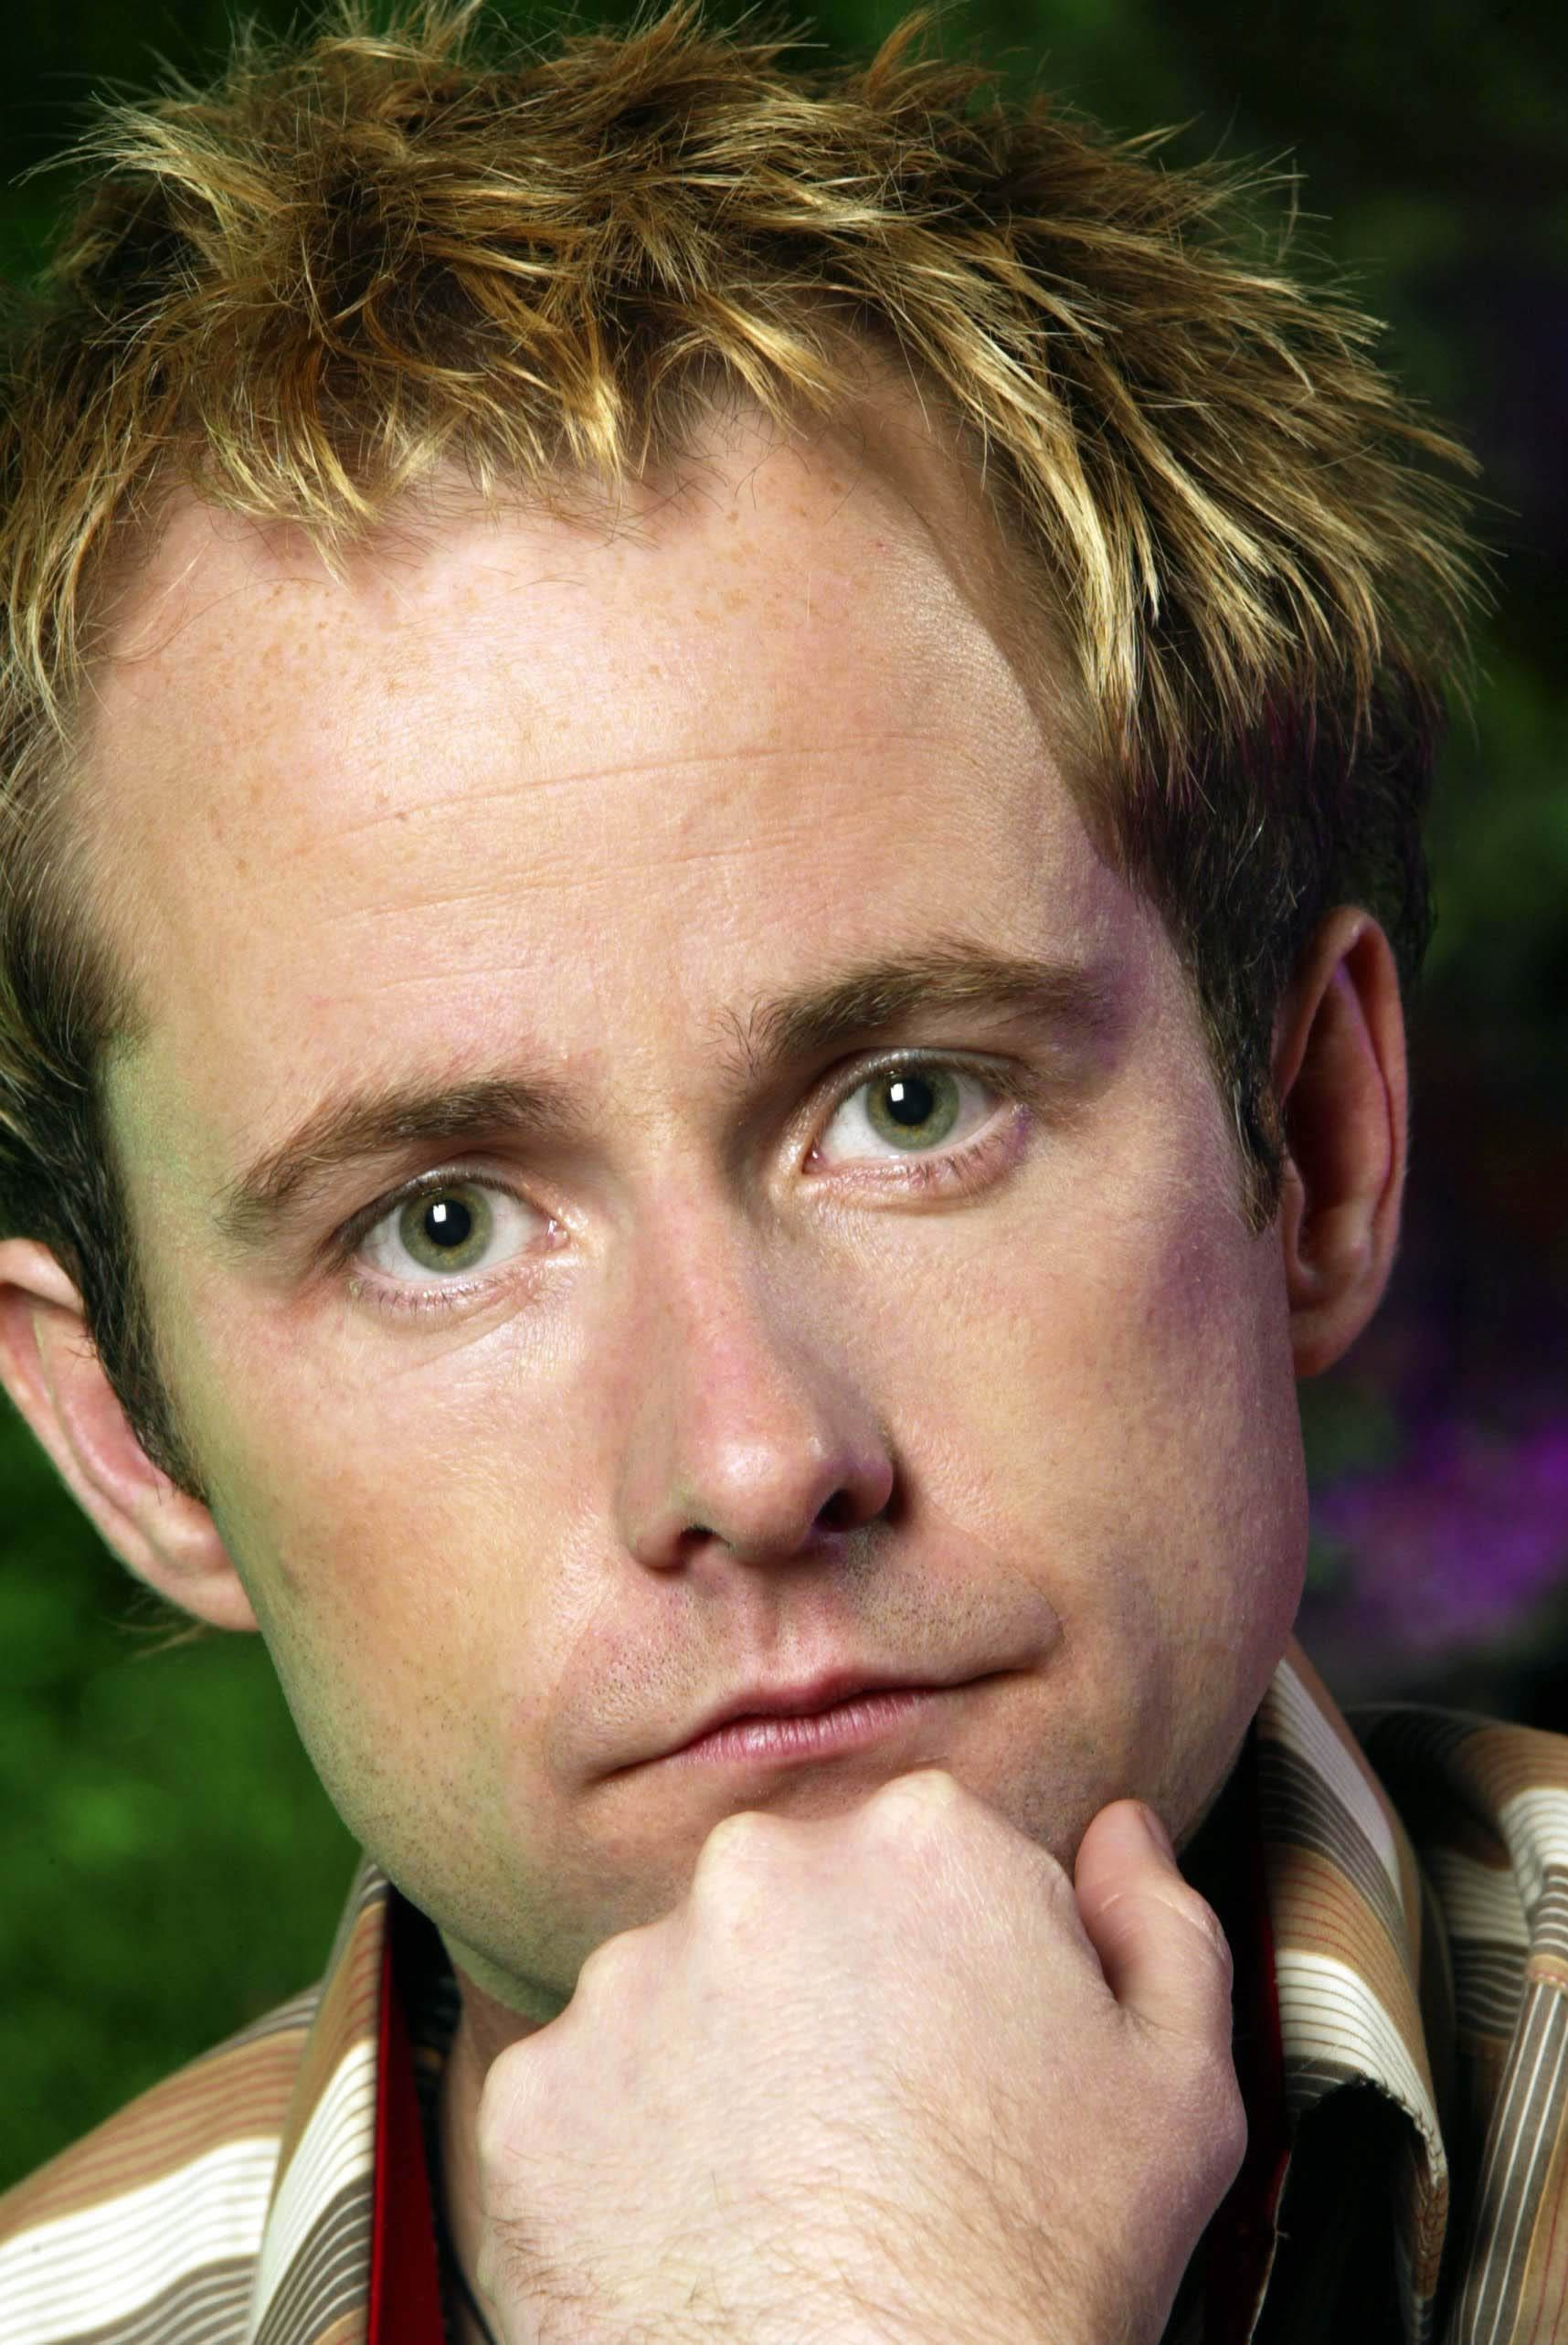 billy boyd 2016billy boyd – the last goodbye, billy boyd – the last goodbye перевод, billy boyd the last goodbye lyrics, billy boyd the last goodbye скачать, billy boyd – the edge of night, billy boyd – the last goodbye chords, billy boyd the last goodbye аккорды, billy boyd – the edge of night перевод, billy boyd pippin's song перевод, billy boyd the last goodbye текст, billy boyd and dominic monaghan, billy boyd song, billy boyd the last goodbye tab, billy boyd pippin's song, billy boyd sings, billy boyd hobbit song, billy boyd 2016, billy boyd interview, billy boyd agents of shield, billy boyd farewell